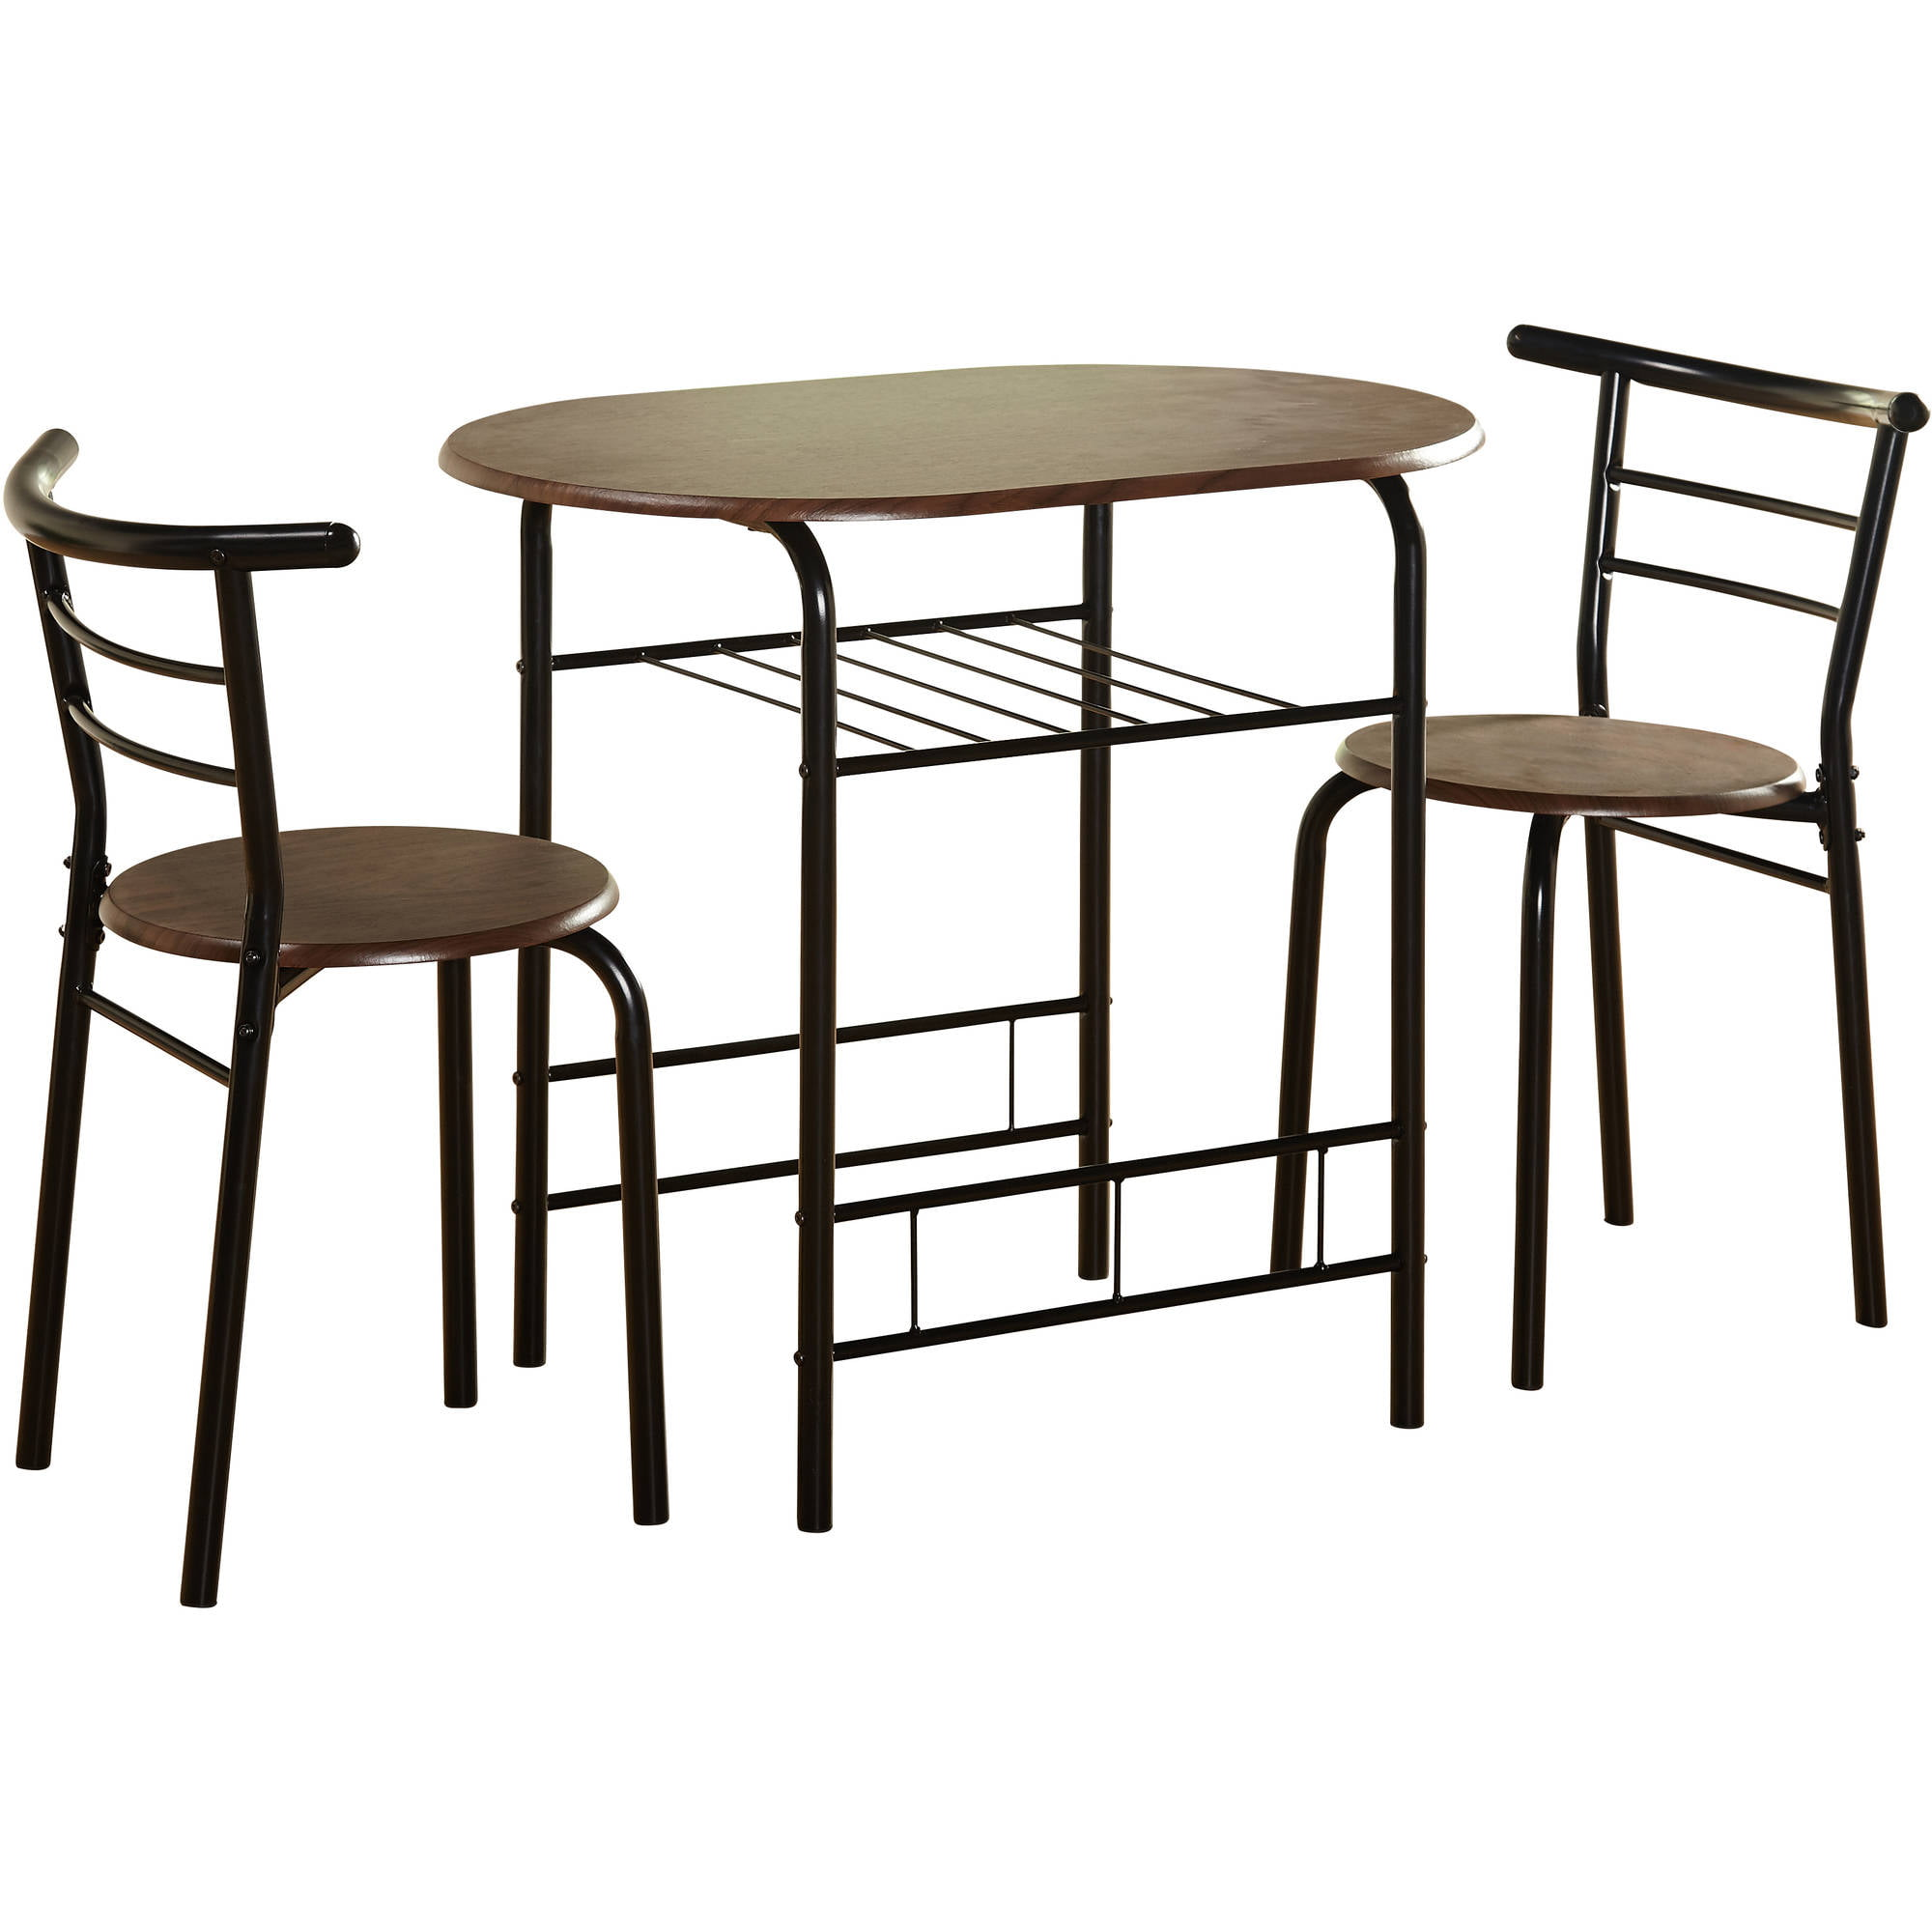 3-Piece Bistro Set, Multiple Colors - Walmart.com